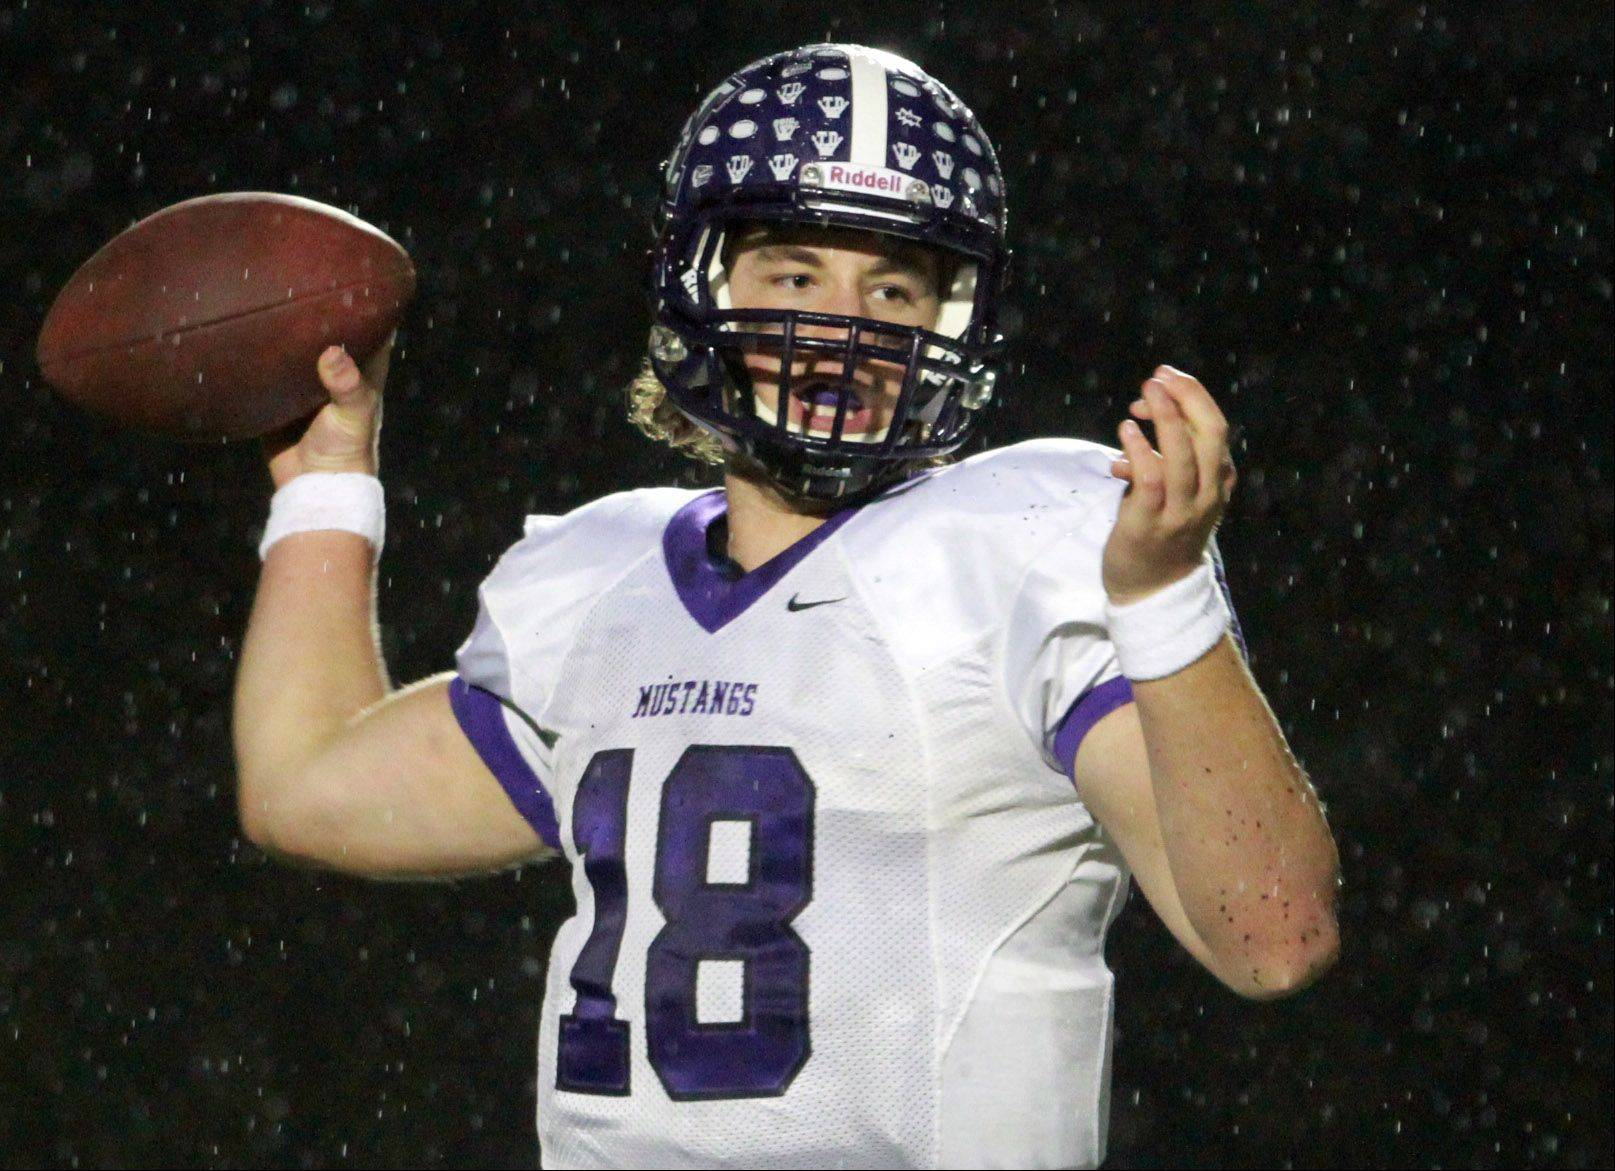 Rolling Meadows quarterback Bobby Suchecki throws the ball.